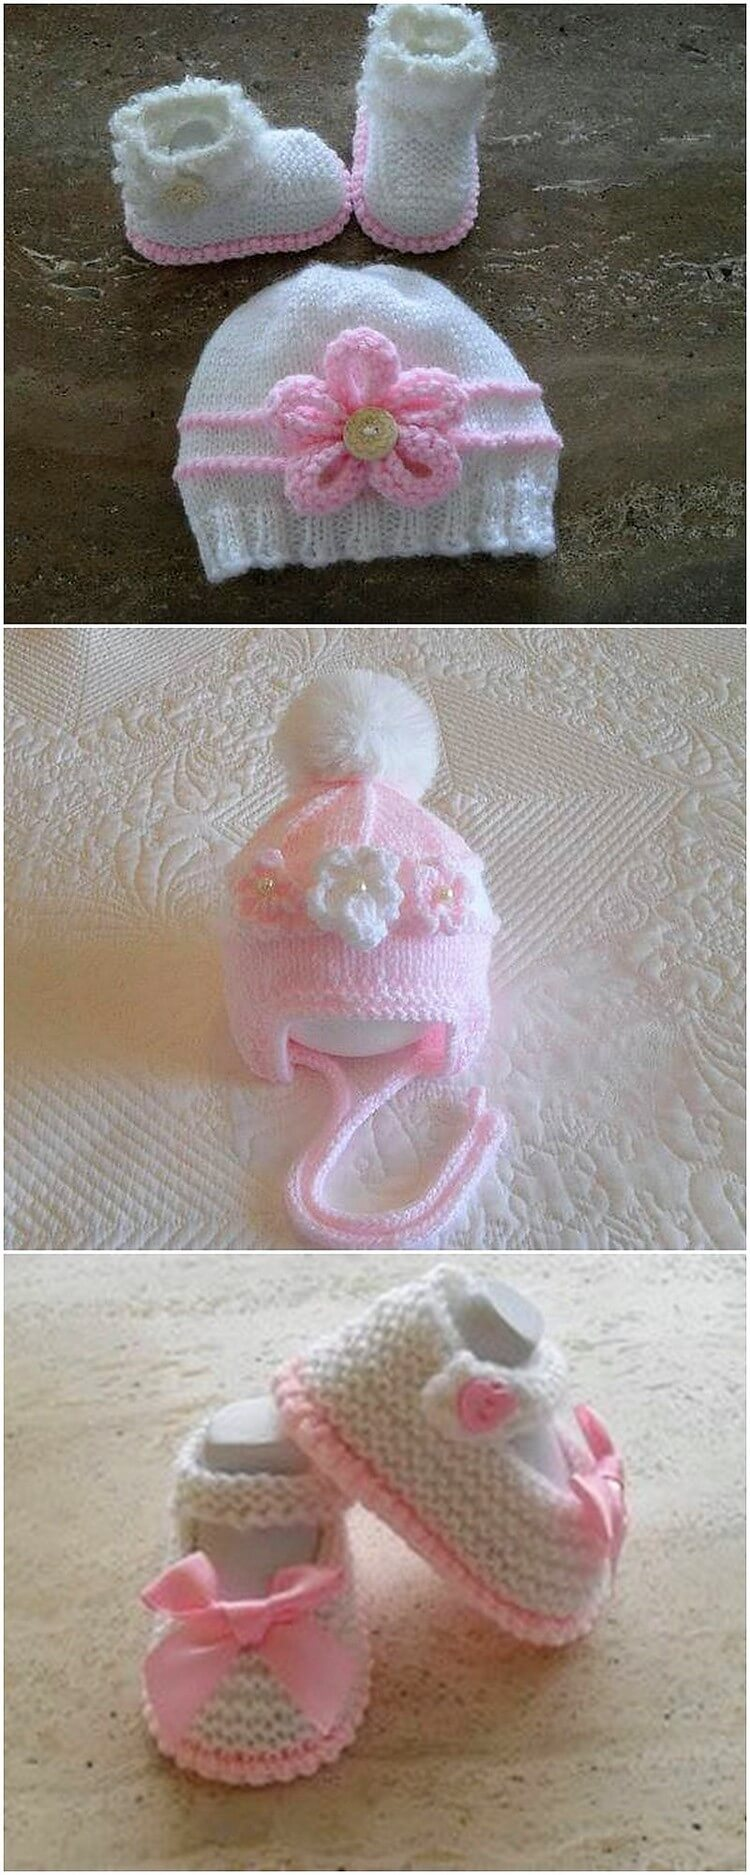 Crochet Cap and Booties for Kids (2)